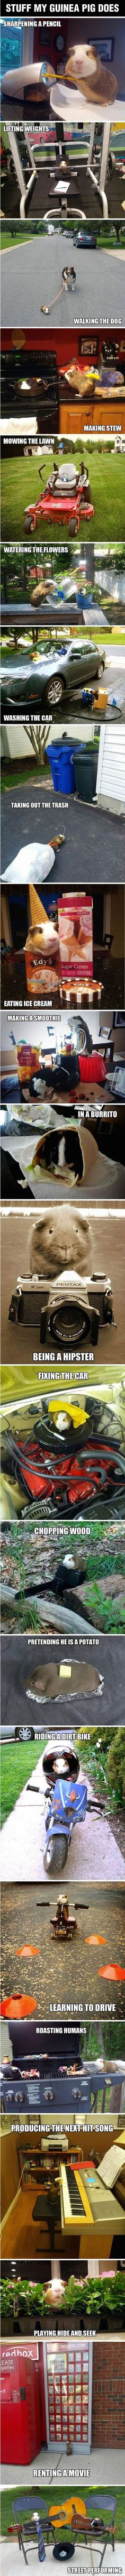 Stuff My Guinea Pig Does. Stuff My Guinea Pig Does… funny cute animals adorable animal pets humor funny animals funny pets Funny Animal Quotes, Funny Animal Videos, Funny Animal Pictures, Cute Funny Animals, Funny Cute, Funniest Pictures, Hilarious Pictures, Funny Photos, Animals For Kids